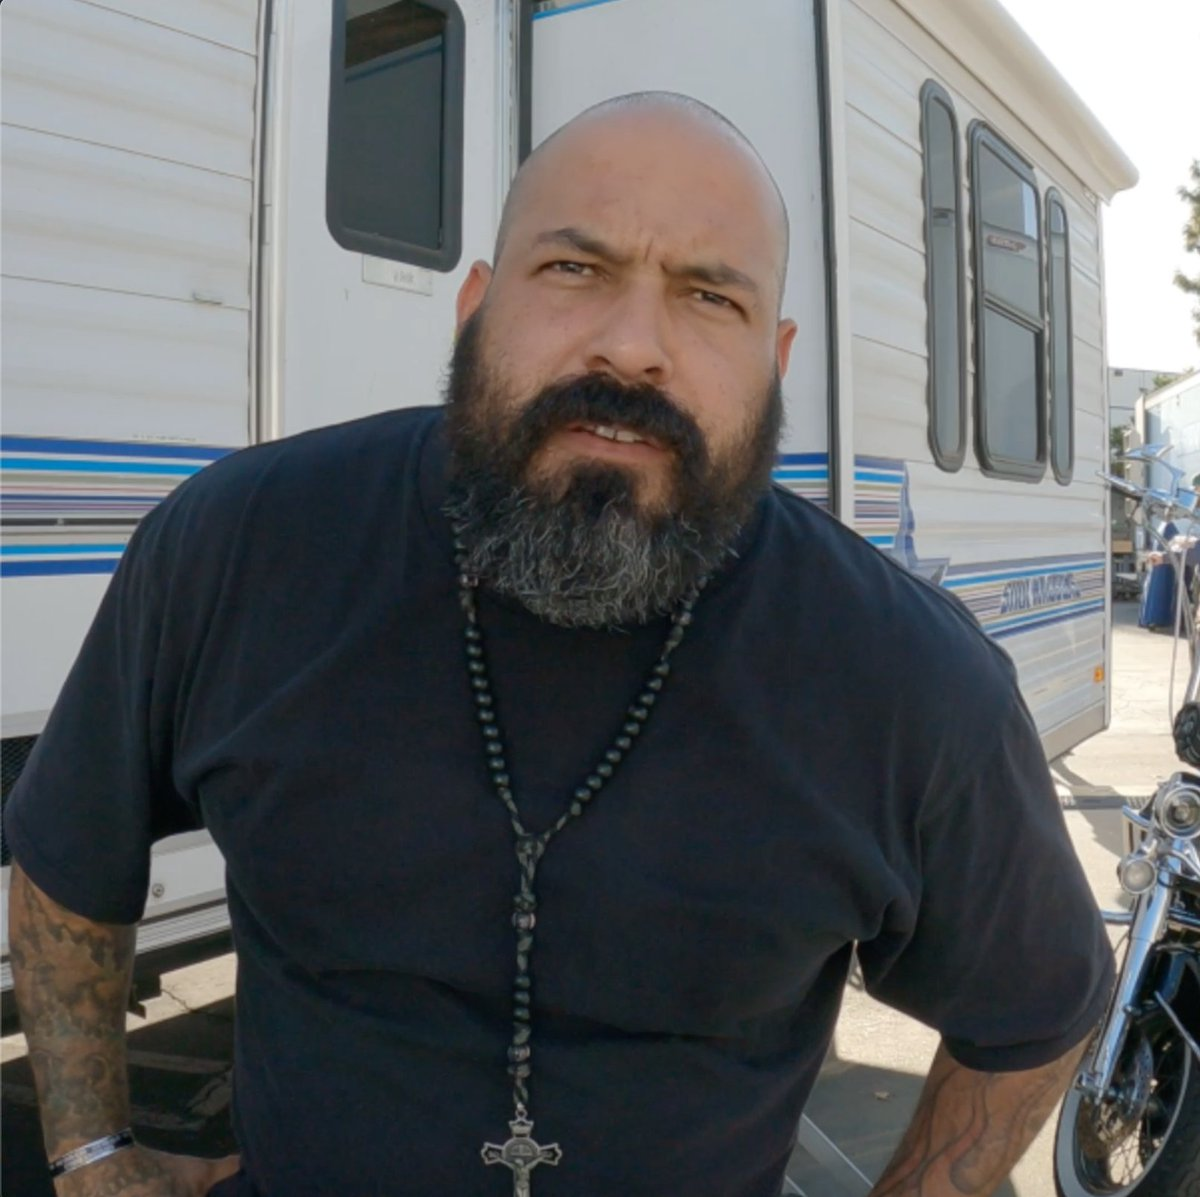 .@thereal_rocco discusses acting, love, and... constipation. #MayansFX